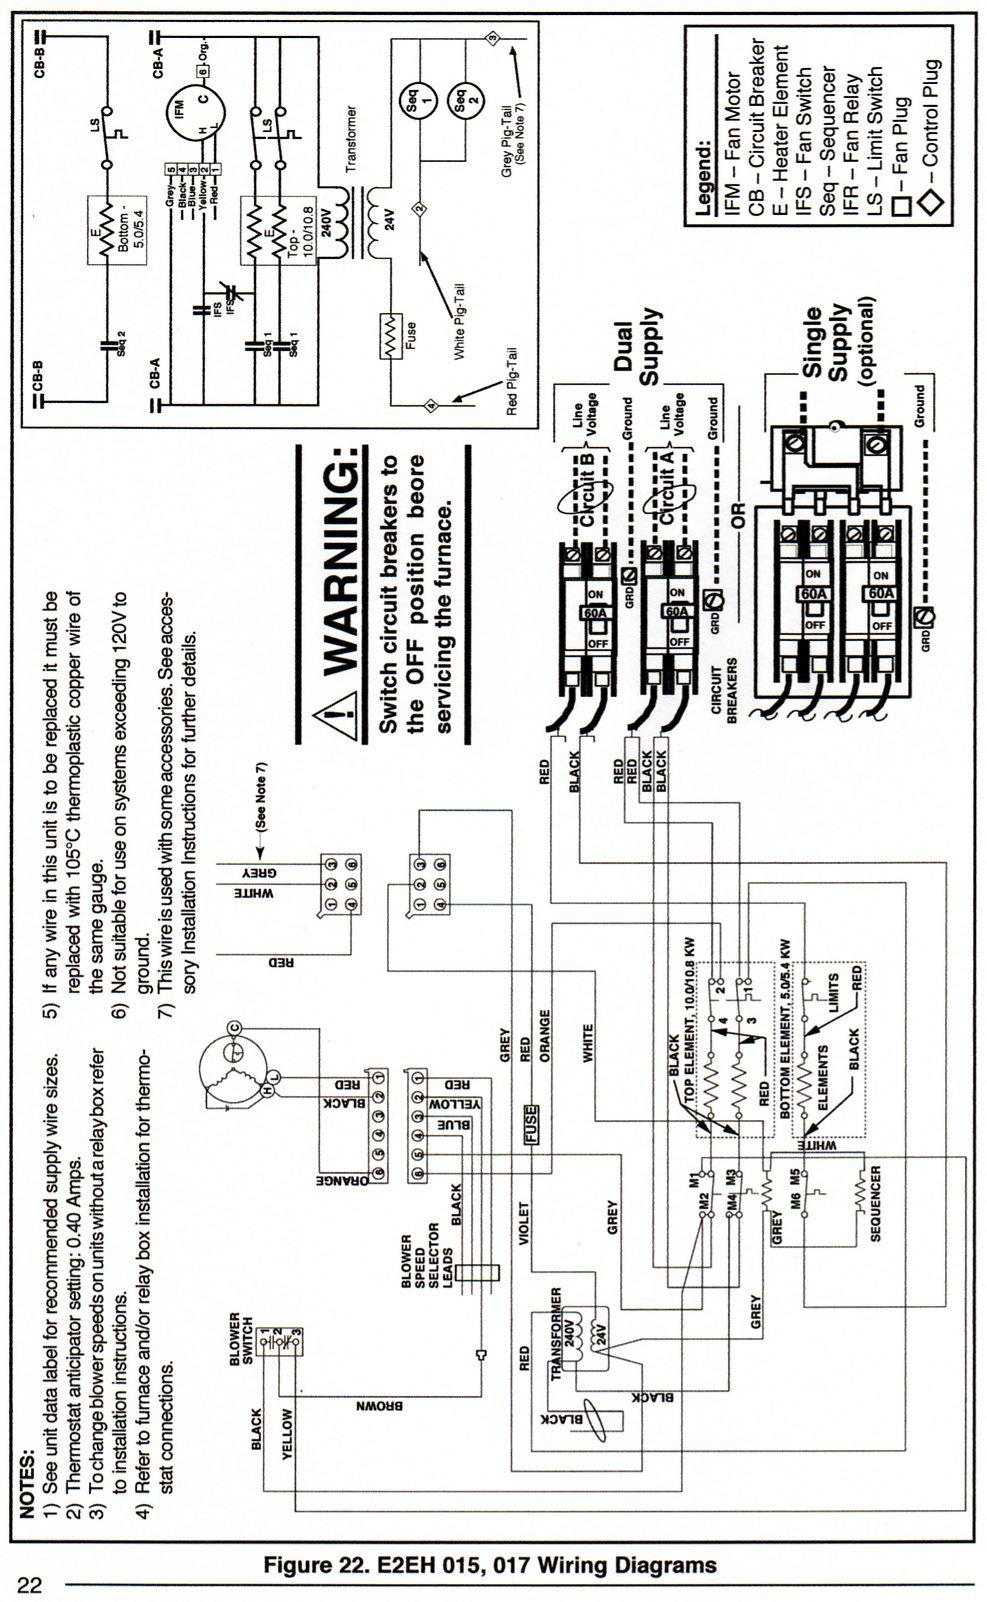 intertherm furnace wire diagram intertherm furnace wiring diagram ntp61006fai intertherm furnace wiring diagram #1